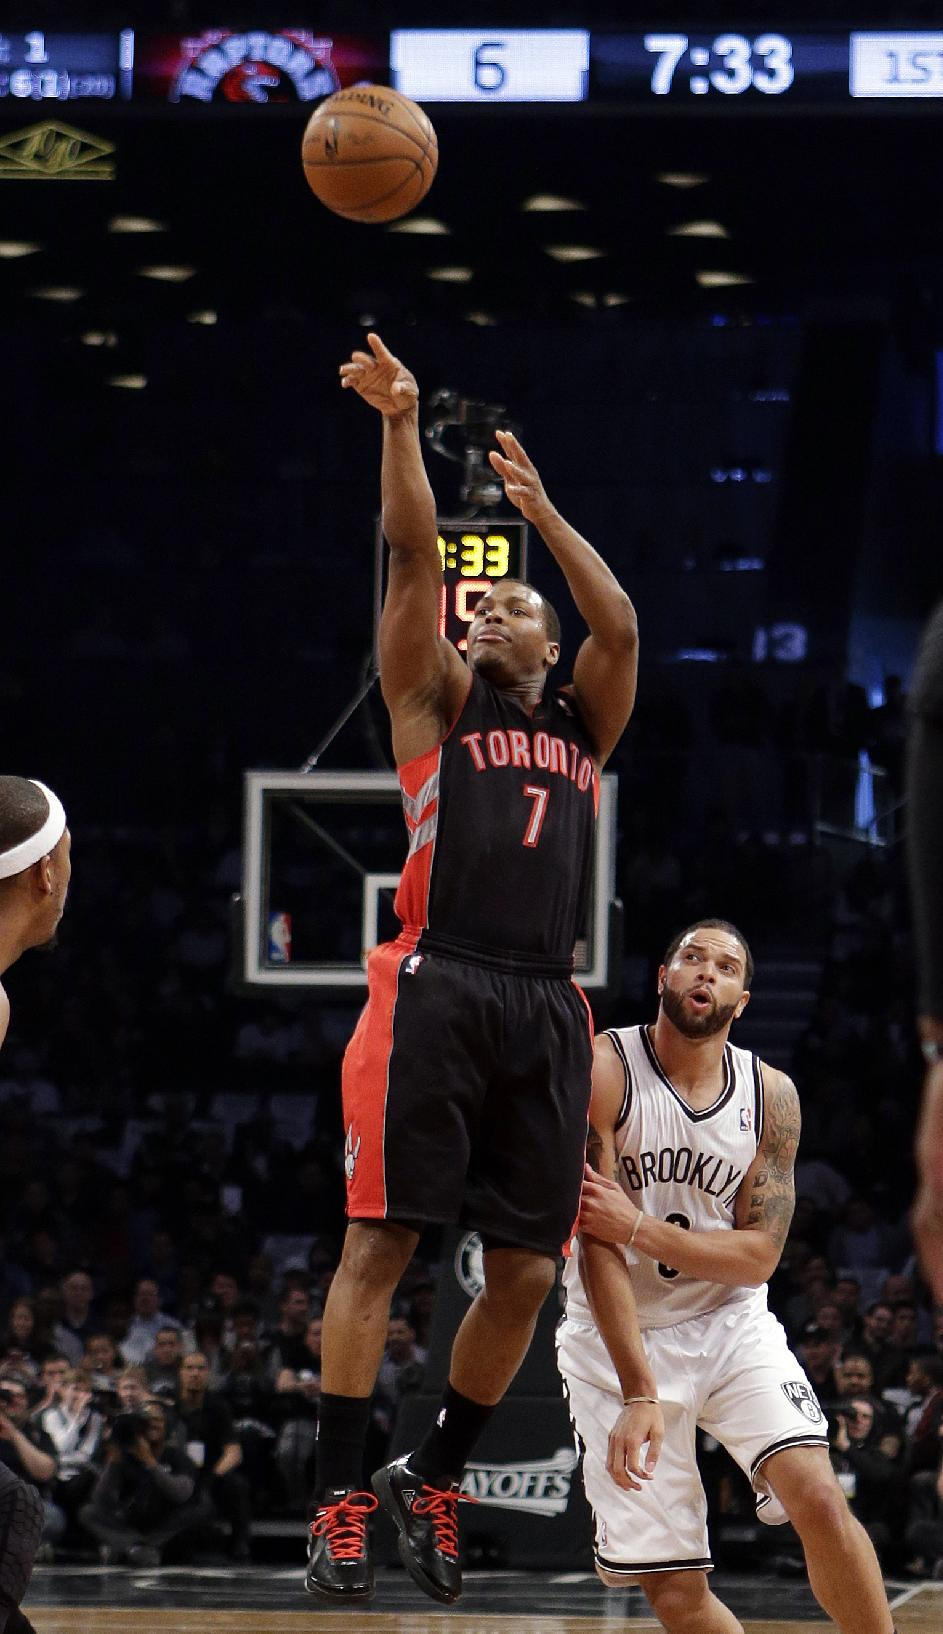 Toronto Raptors' Kyle Lowry (7) shoots over Brooklyn Nets' Deron Williams during the first half of Game 3 of an NBA basketball first-round playoff series Friday, April 25, 2014, in New York